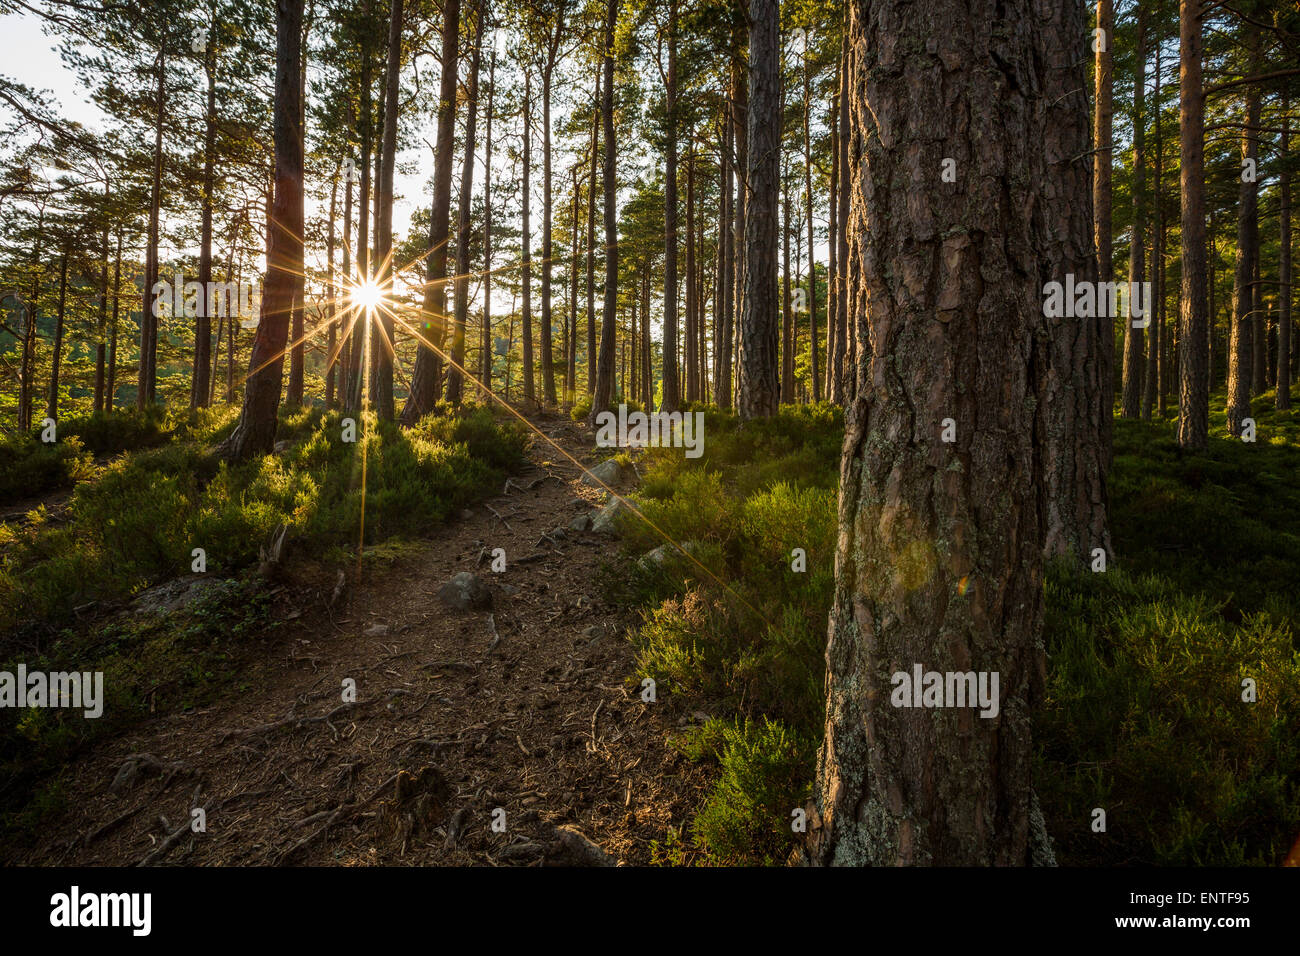 Beautiful forest path in Rothiemurchus Forest, Cairngorms National Park, Highlands of Scotland, UK - Stock Image